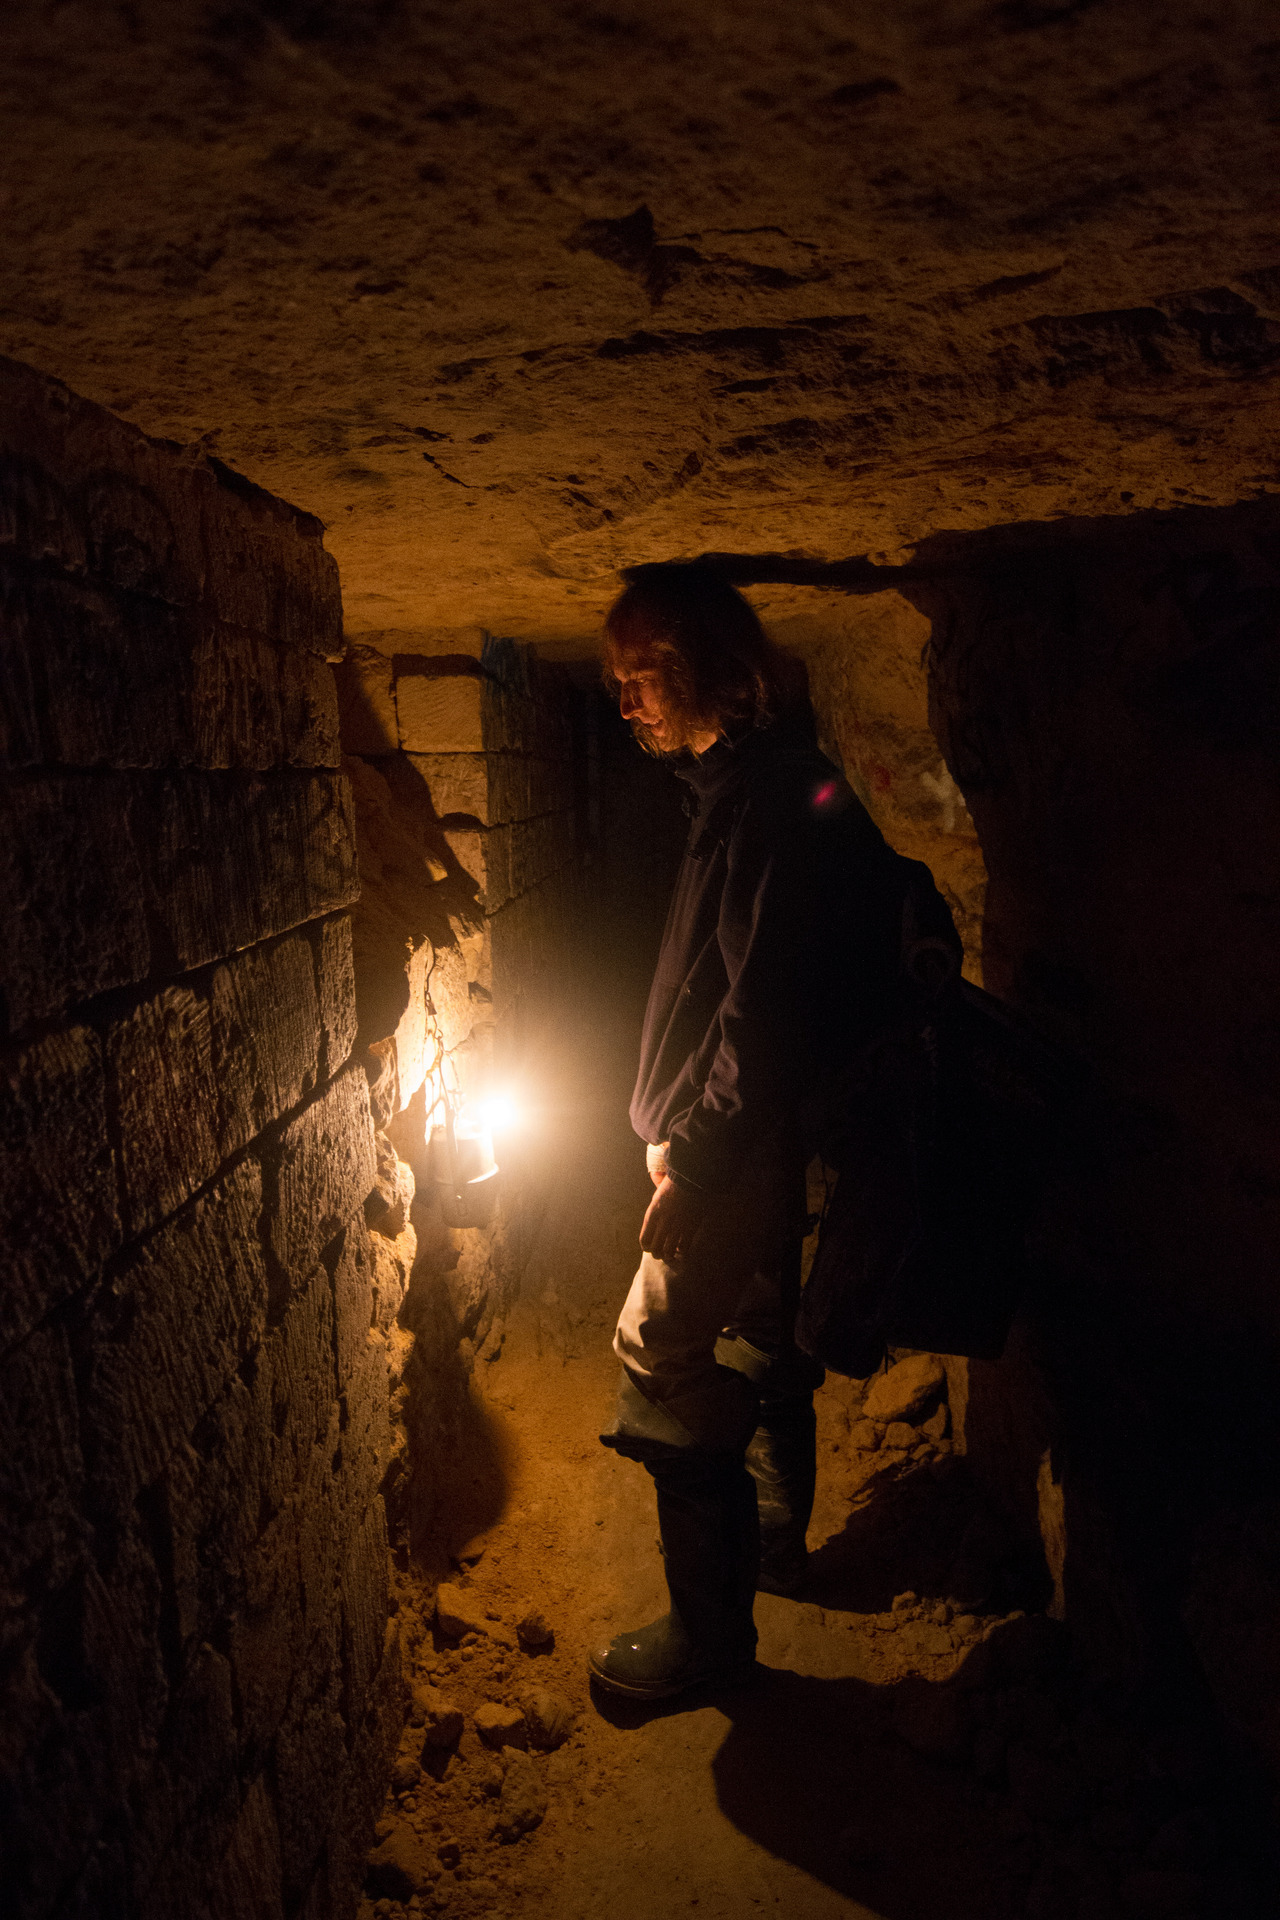 Editing some photos from my trip….here's a peek into the Parisian Catacombs.